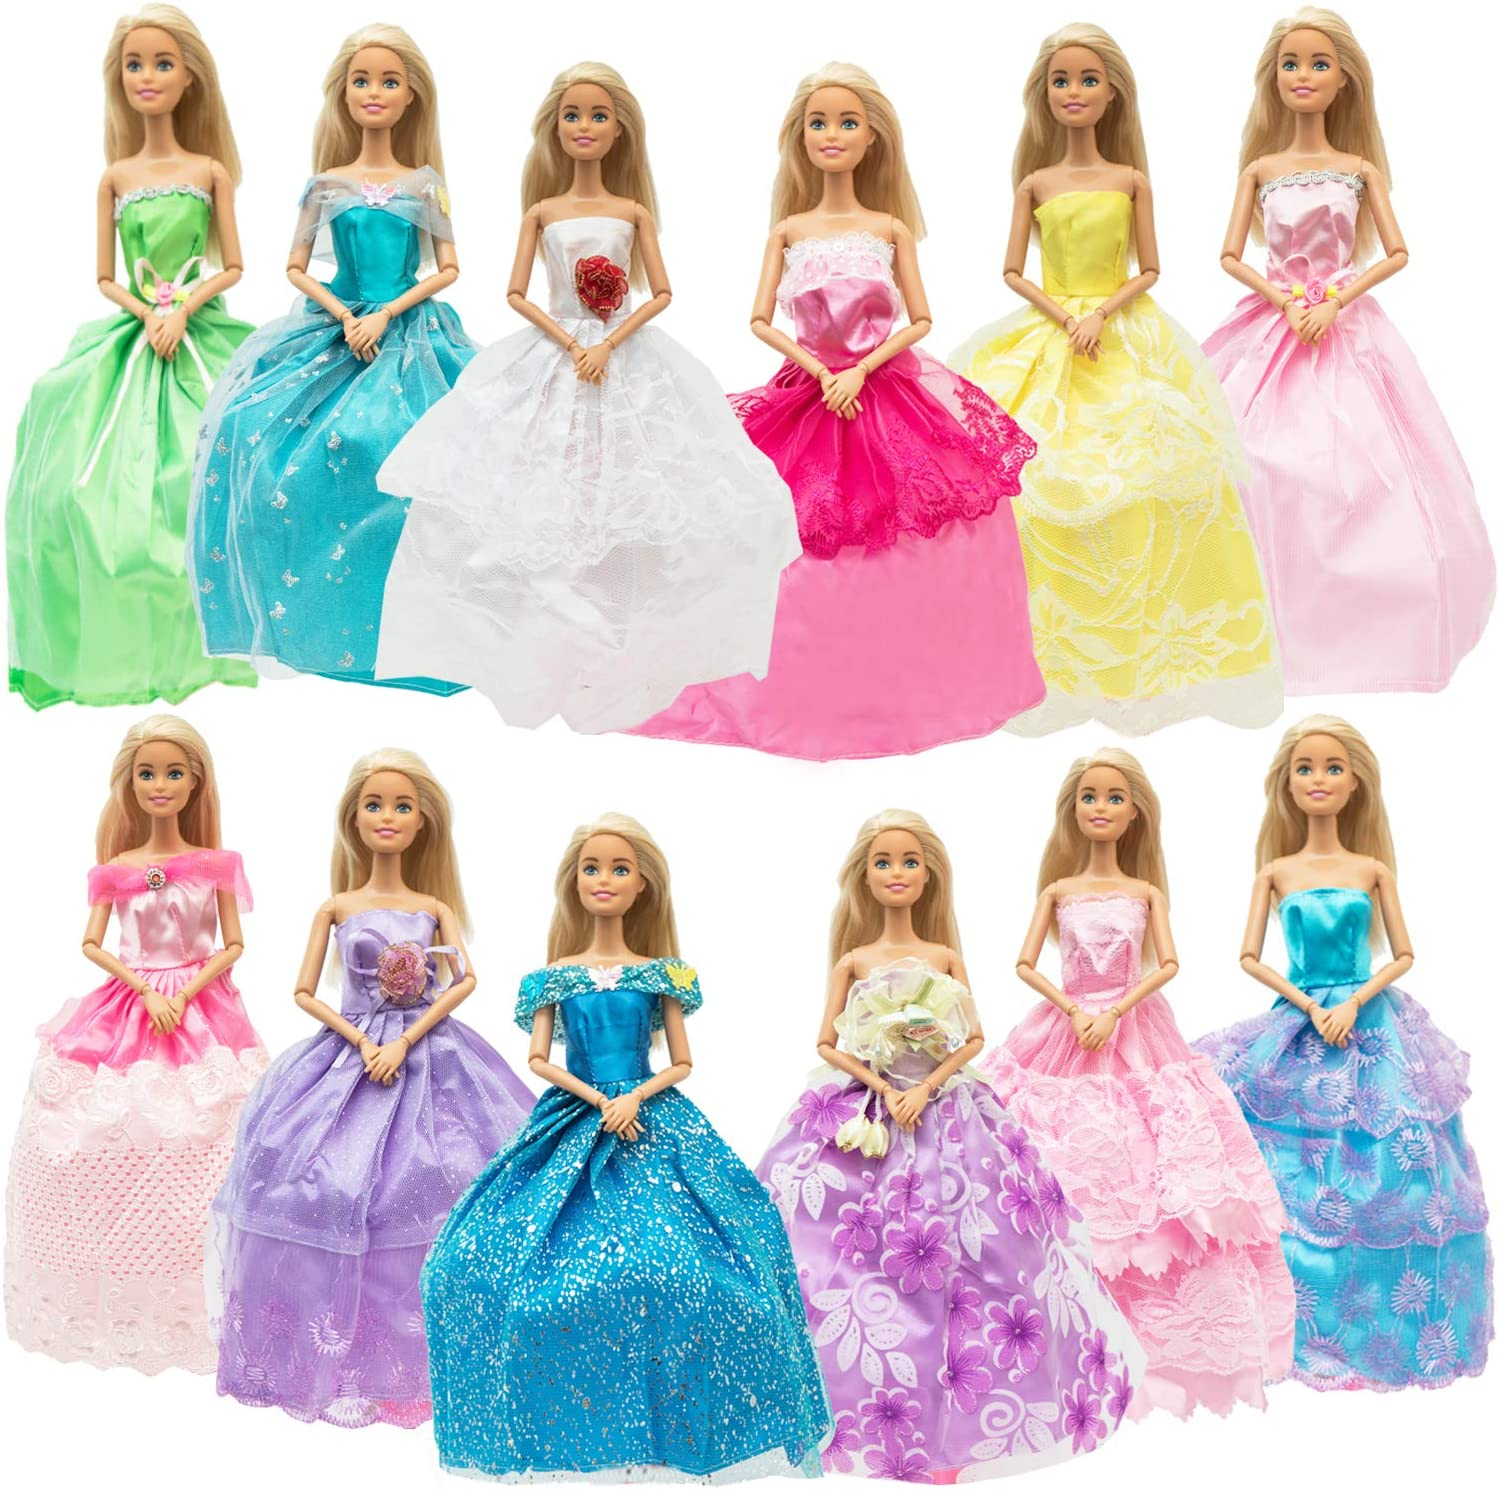 SOTOGO 12 Pieces Doll Clothes for 11.5 Inch Girl Doll Fashion Handmade Wedding Dresses Doll Clothes Evening Party Gowns Outfit Little Girls Gift